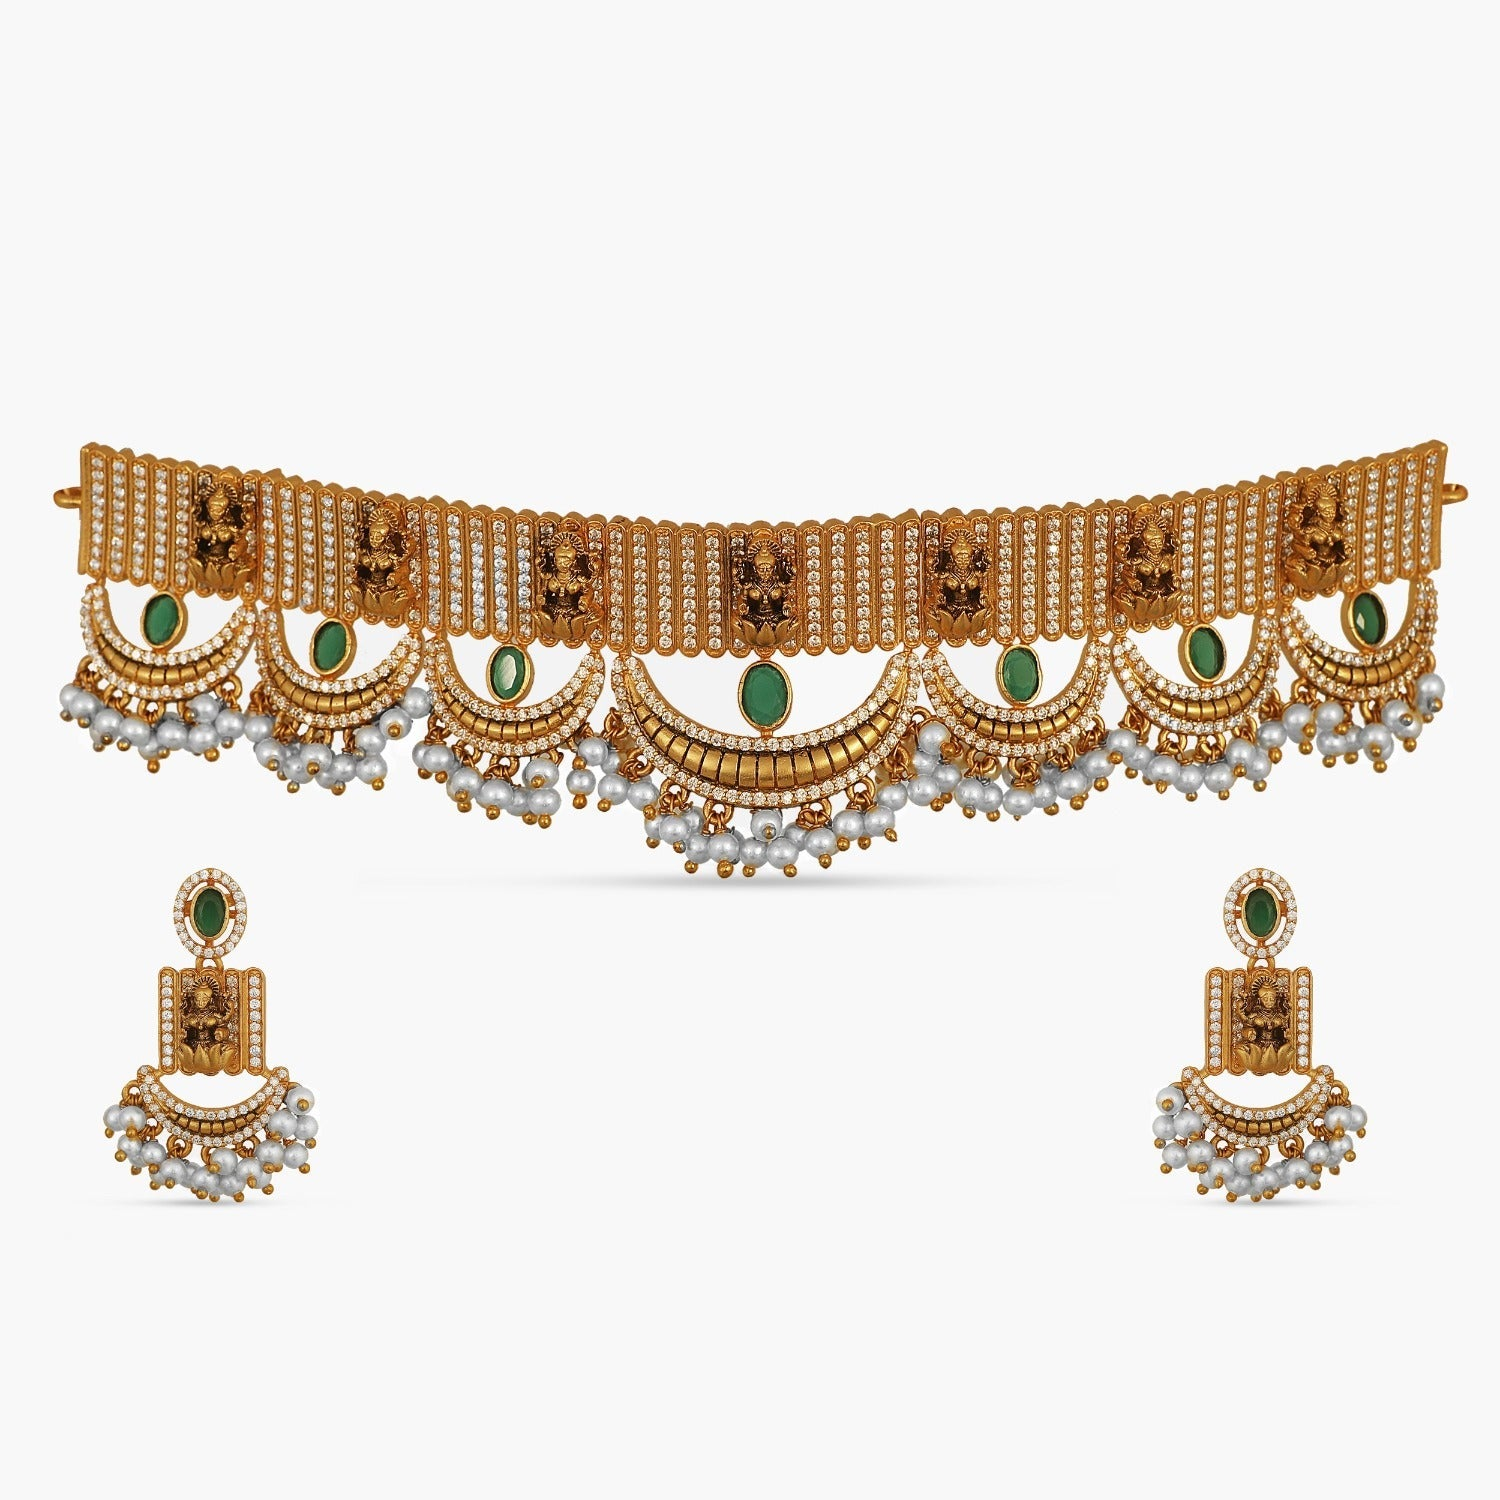 Iksha Antique Choker Set